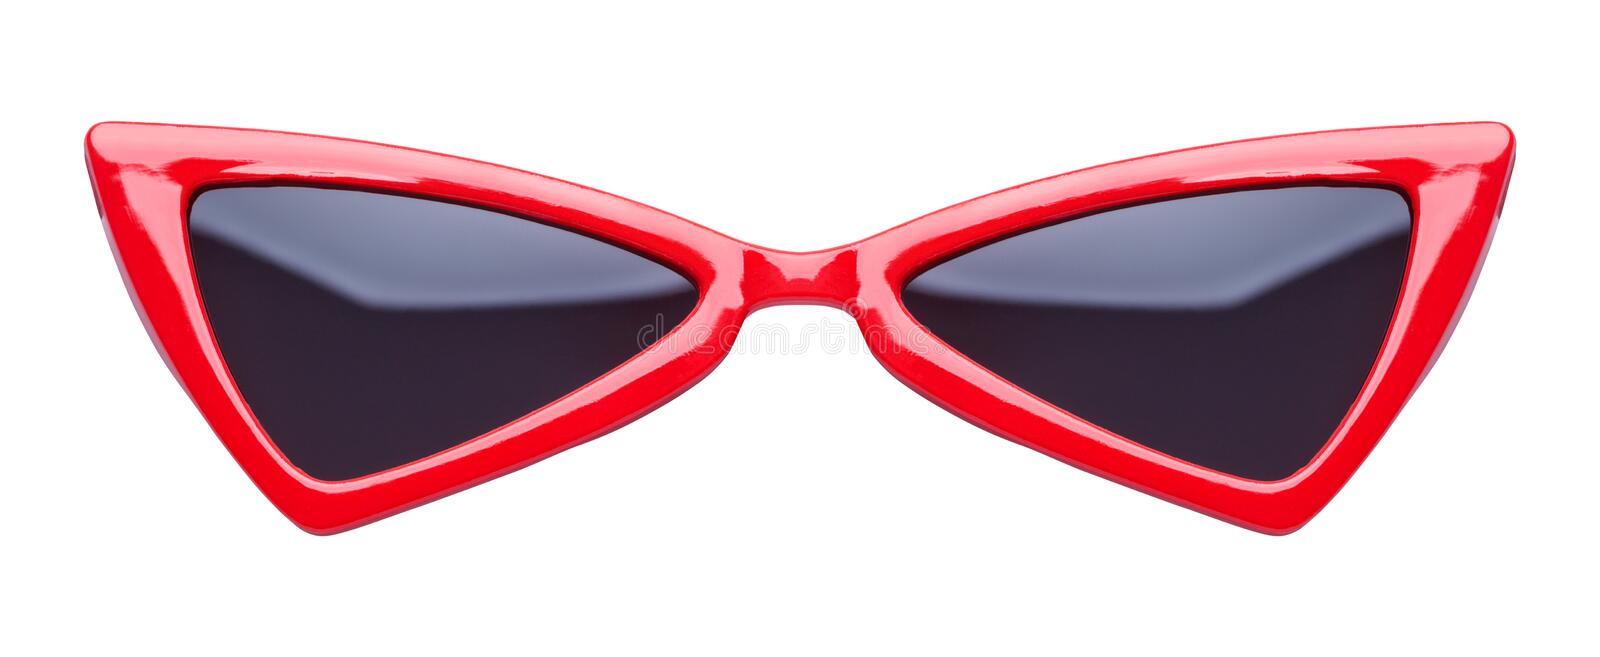 Red Pointed Sunglasses royalty free stock photography